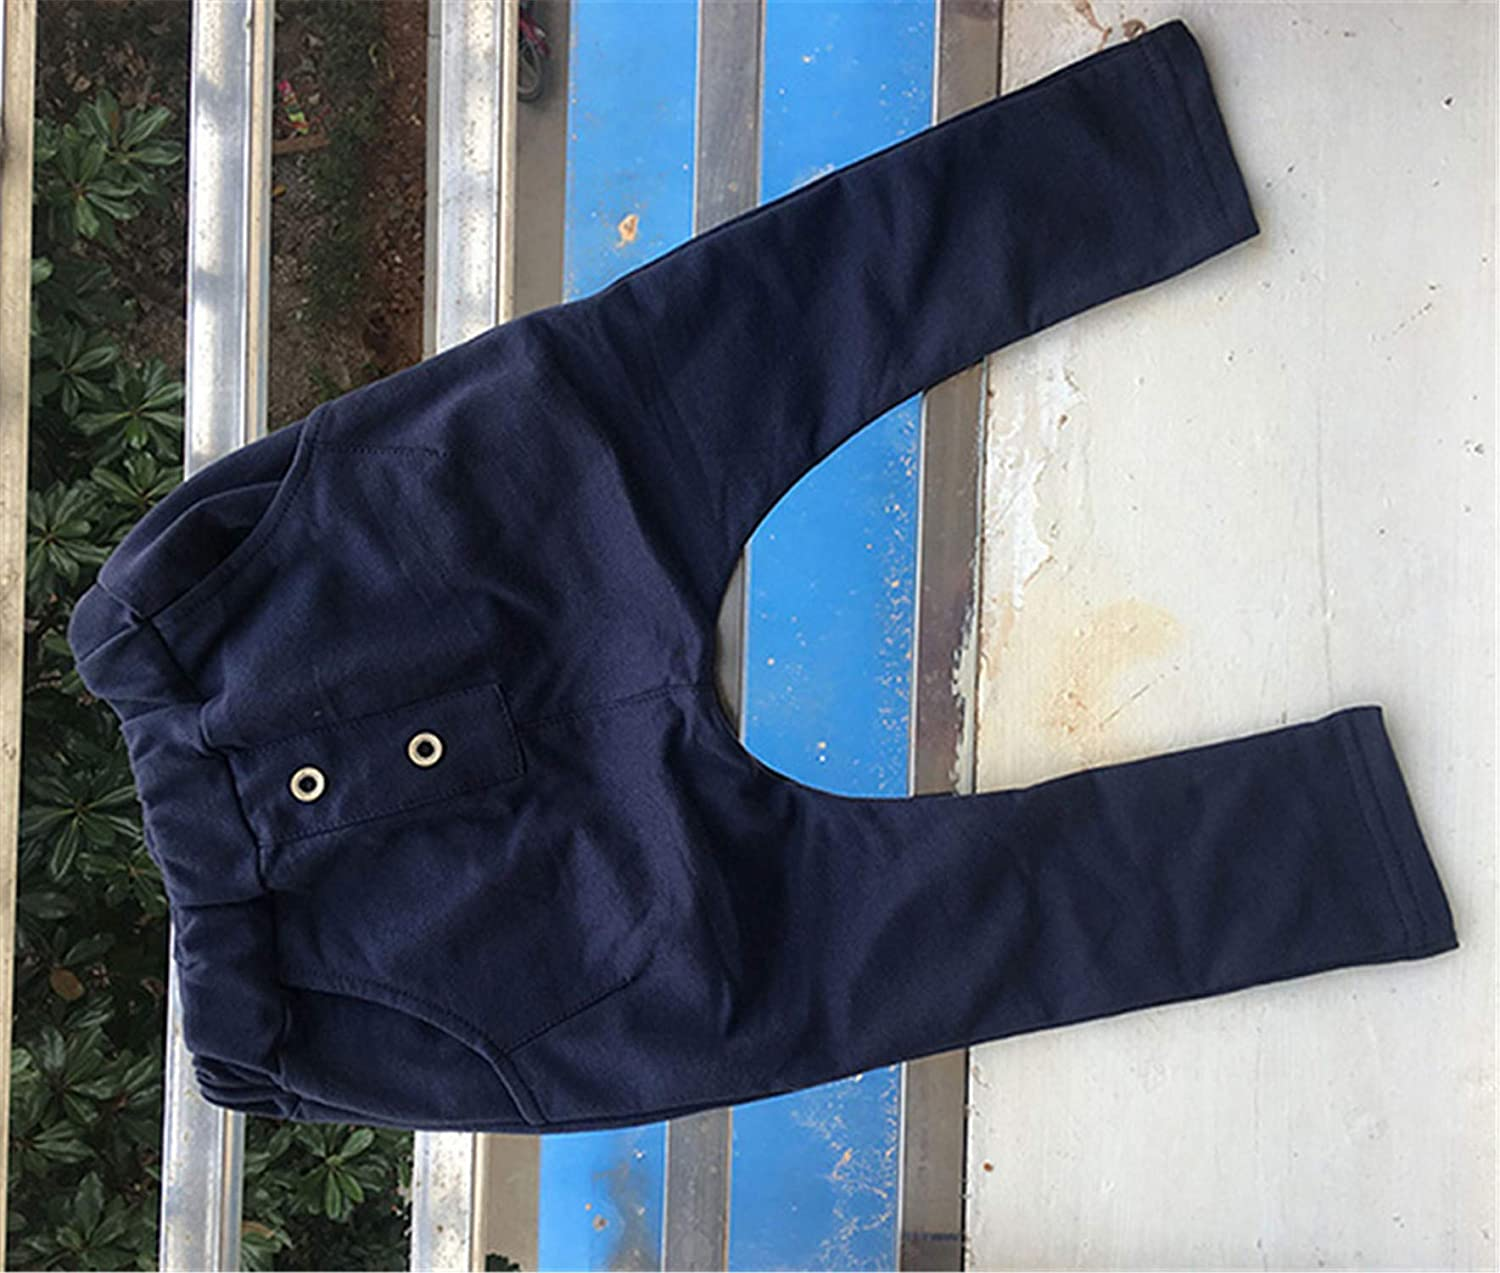 MRxcff New Children Spring Autumn Clothes Kids Trousers Girls Pants for Baby Boys Harem Pants Solid Blue Green Buttons